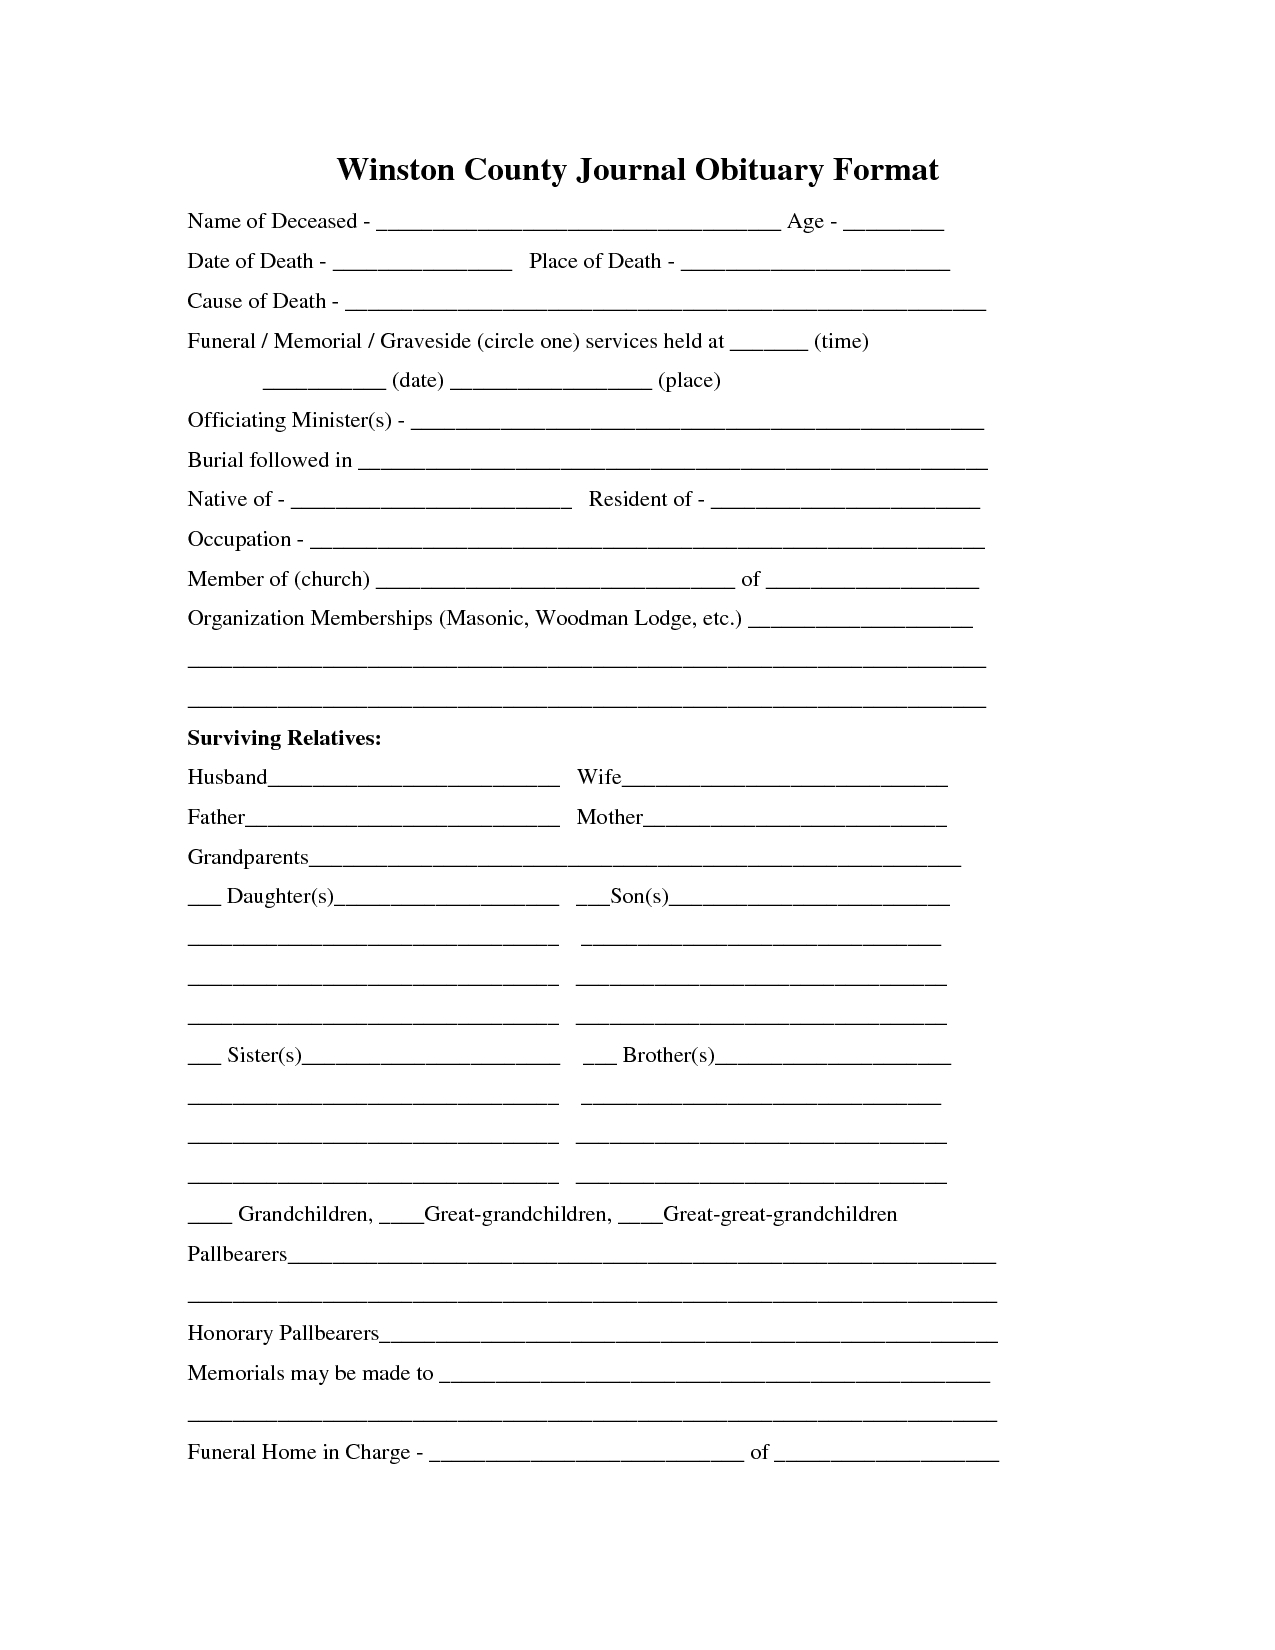 Printable Obituary Template | Fill In The Blank Obituary Template intended for Fill In The Blank Template